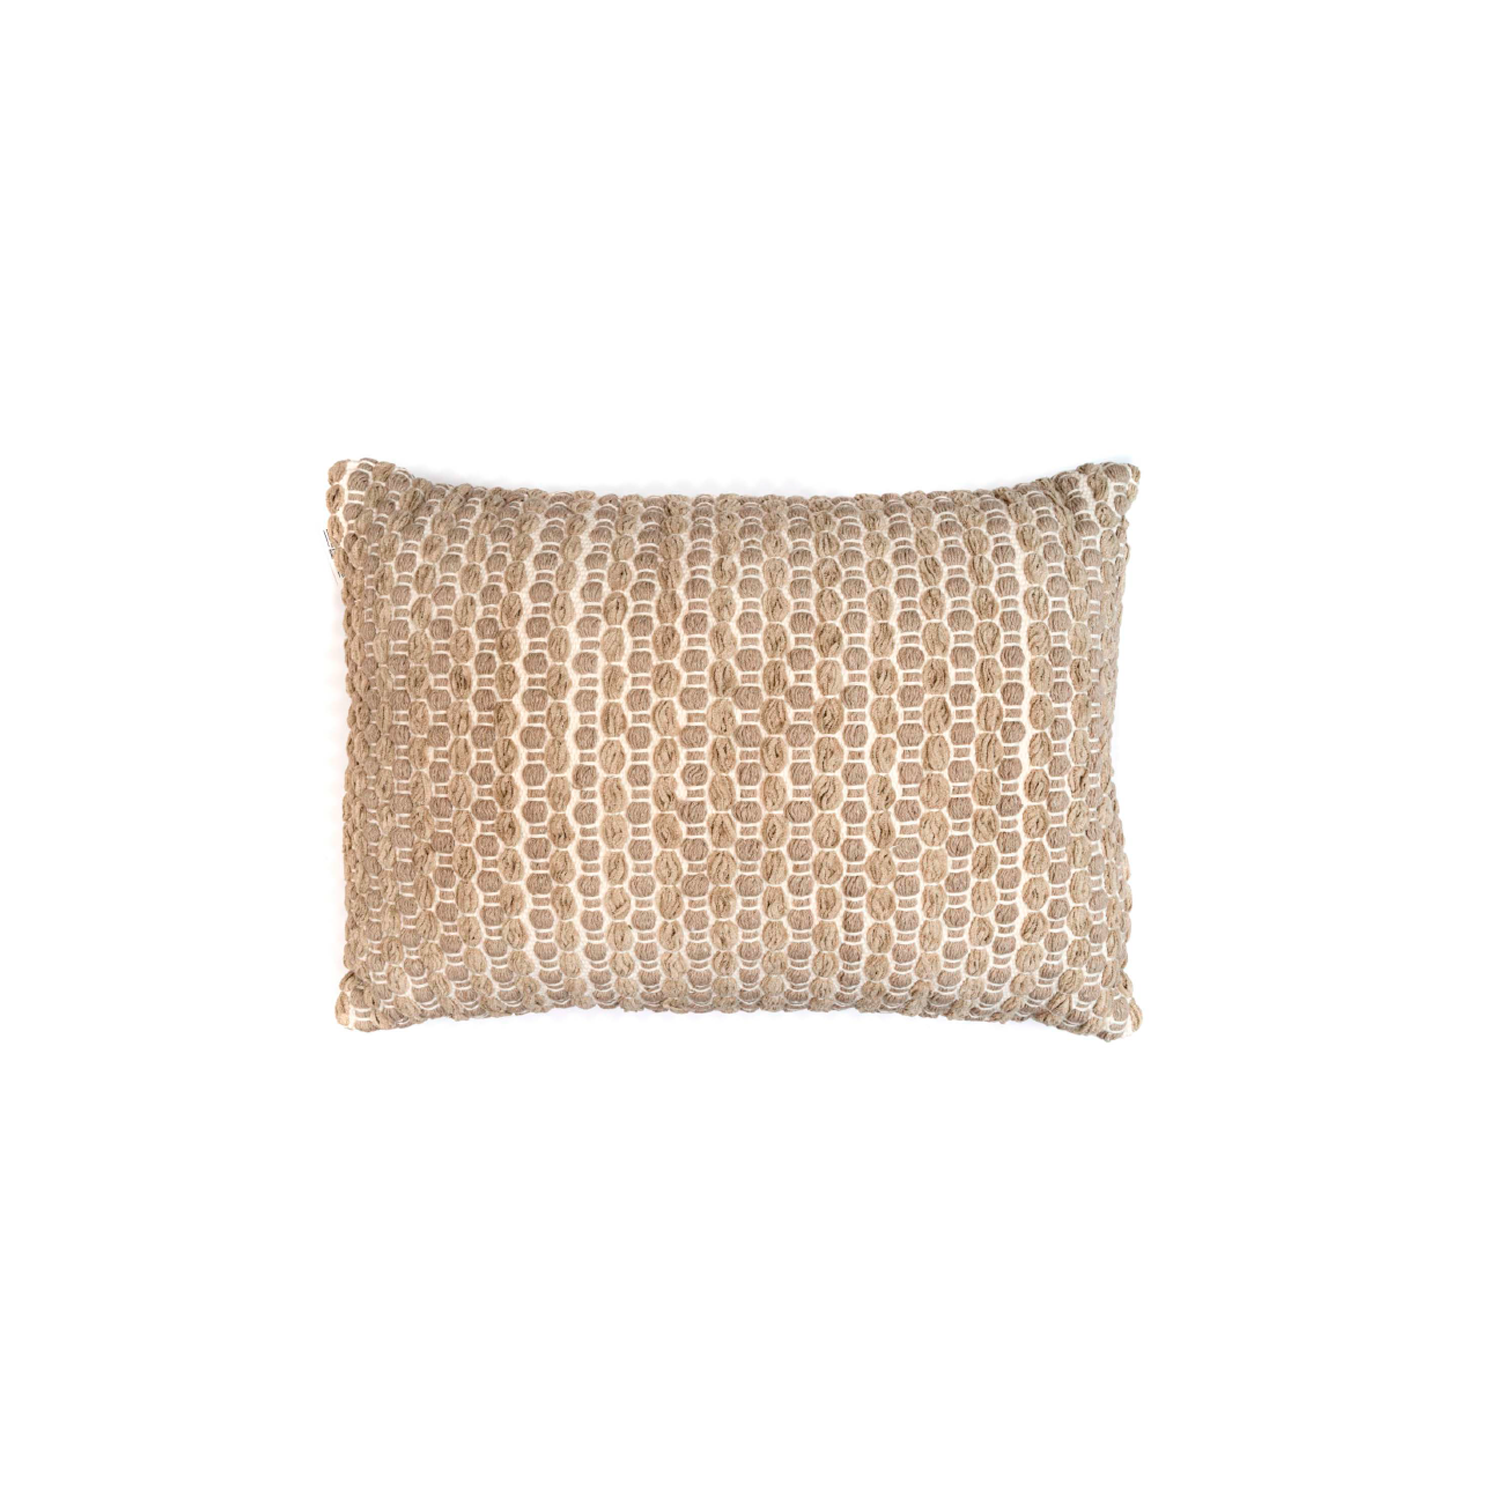 Estrela Terra Cotton Cushion Large - The Flame Sustainable Collection is made from a selection of organic cotton fibres, eco-friendly, hand-woven or elaborated using traditional hand-loom techniques. Carefully knitted within a trained community of women that found in their craft a way to provide their families.  This collection combines Elisa Atheniense mission for responsible sourcing and manufacturing. Each piece is meticulously hand-loom by artisans who practised methods with age-old techniques. With a minimal electricity impact, each item crafted is therefore unique and exclusive. Weavers and artisans are the ultimate lifelines of Elisa Atheniense Home Products.  The hand woven cotton, washable cushion cover is made in Brazil and the inner cushion is made in the UK.   | Matter of Stuff